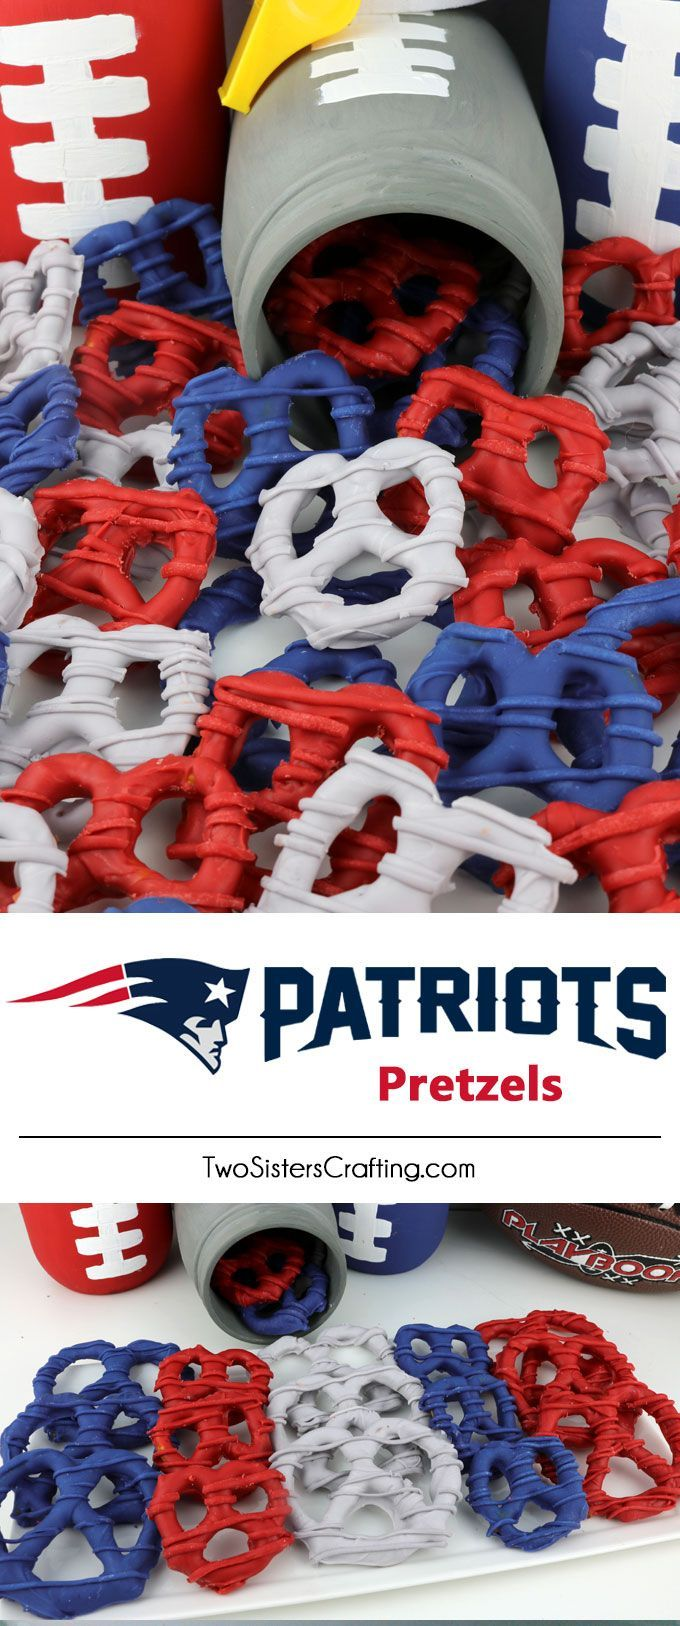 New England Patriots Pretzels - yummy bites of sweet and salty Football Game Day goodness that are super easy to make. They are perfect as a little extra treat at a NFL playoff party, a Super Bowl party or as a special dessert for the New England Patriots fan in your life. Follow us for more fun Super Bowl Food Ideas.